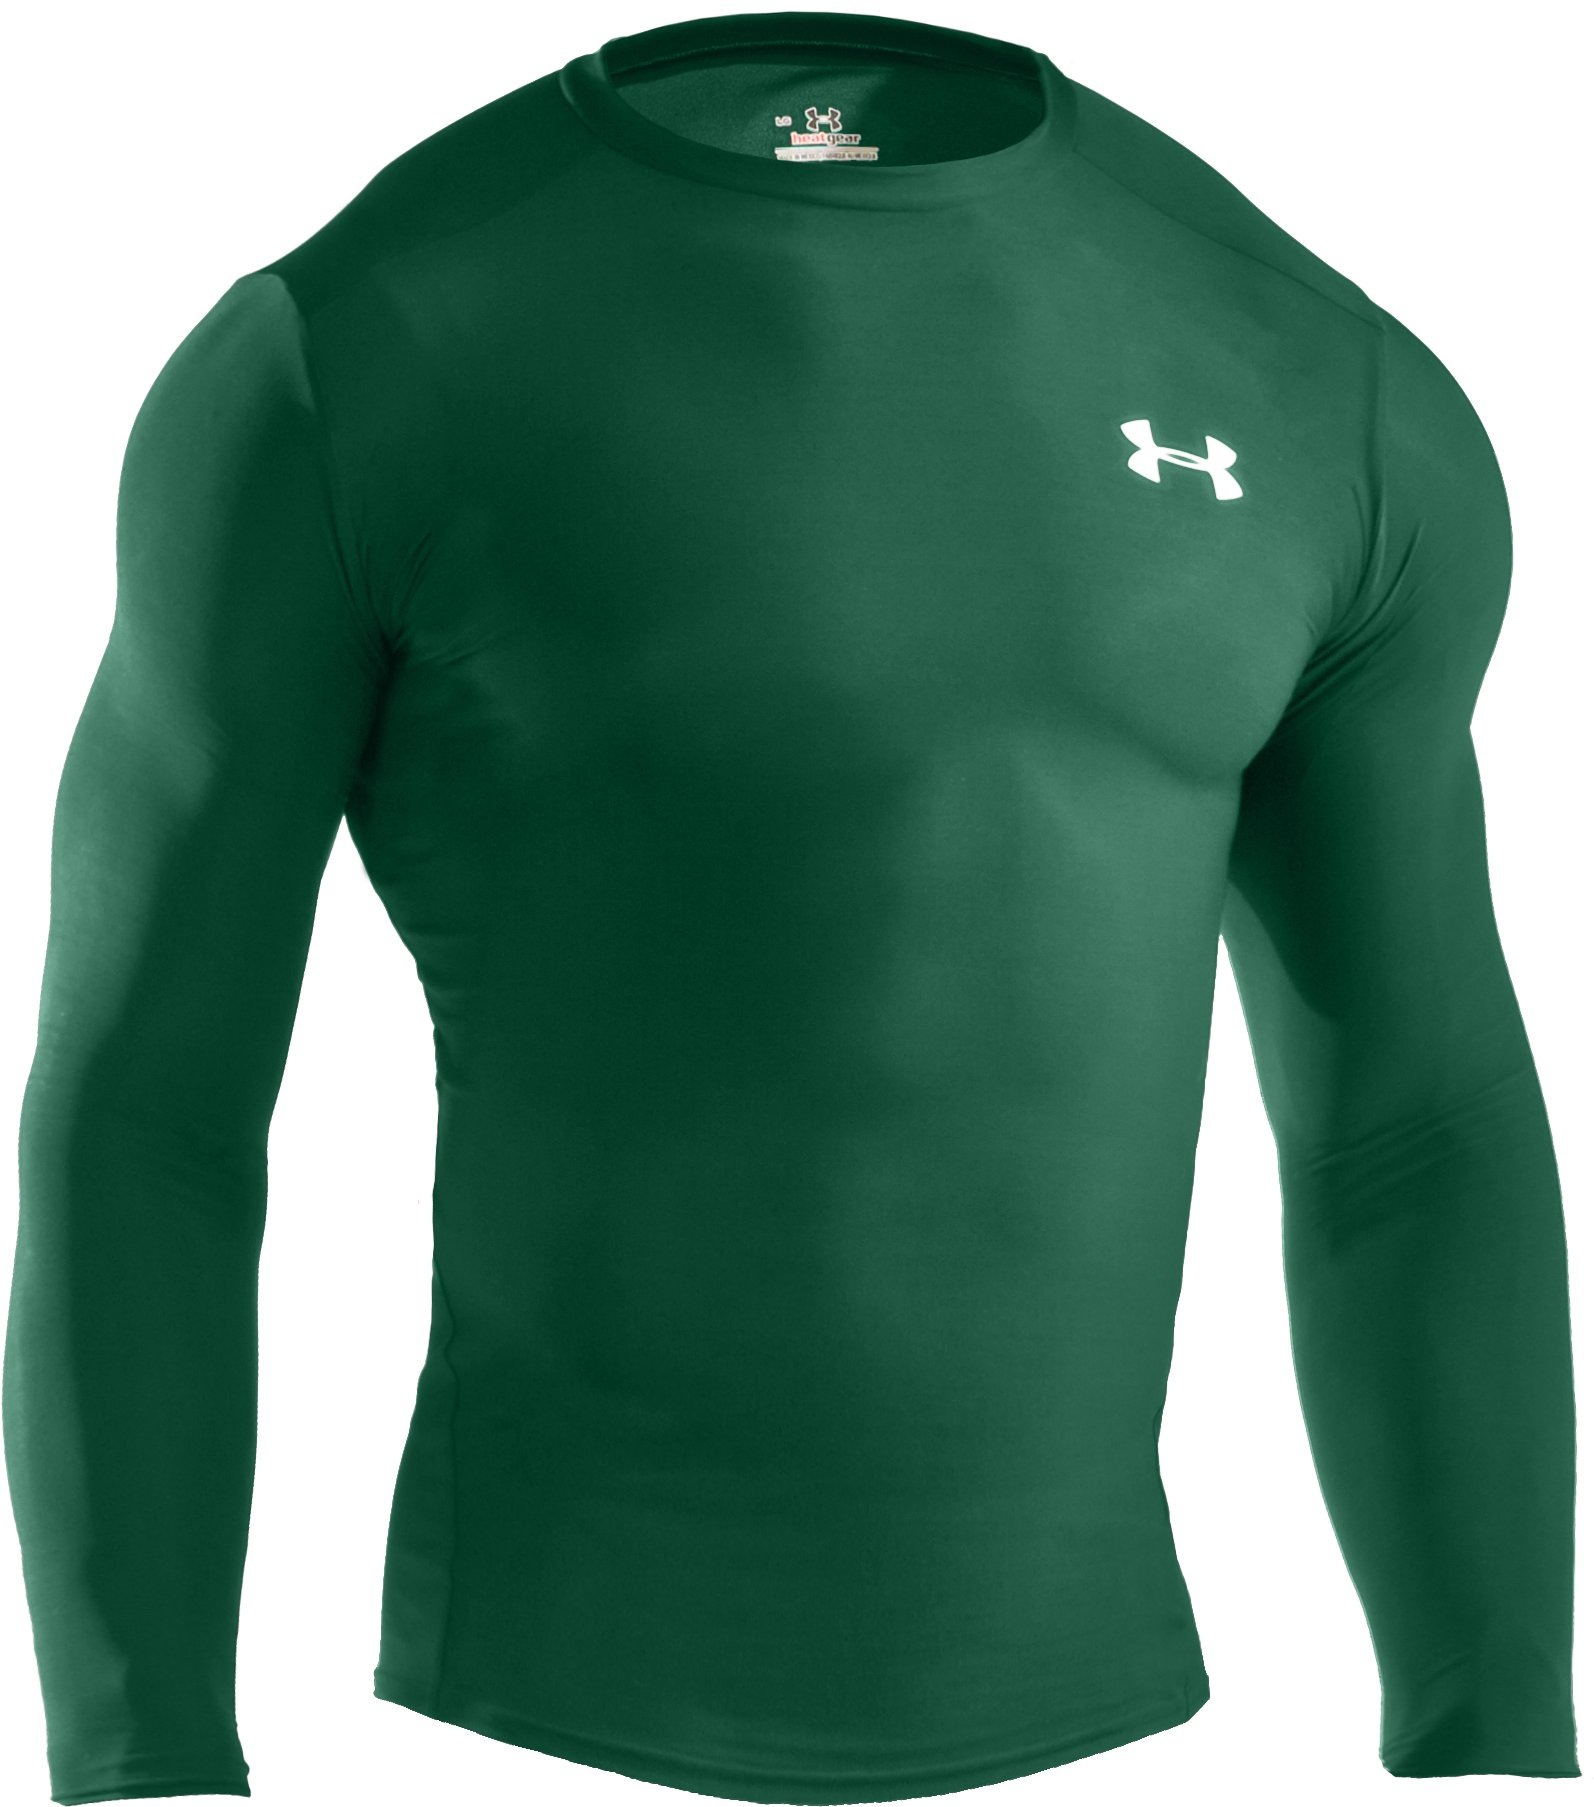 Men's HeatGear® Compression Long Sleeve T-Shirt, Forest Green, undefined